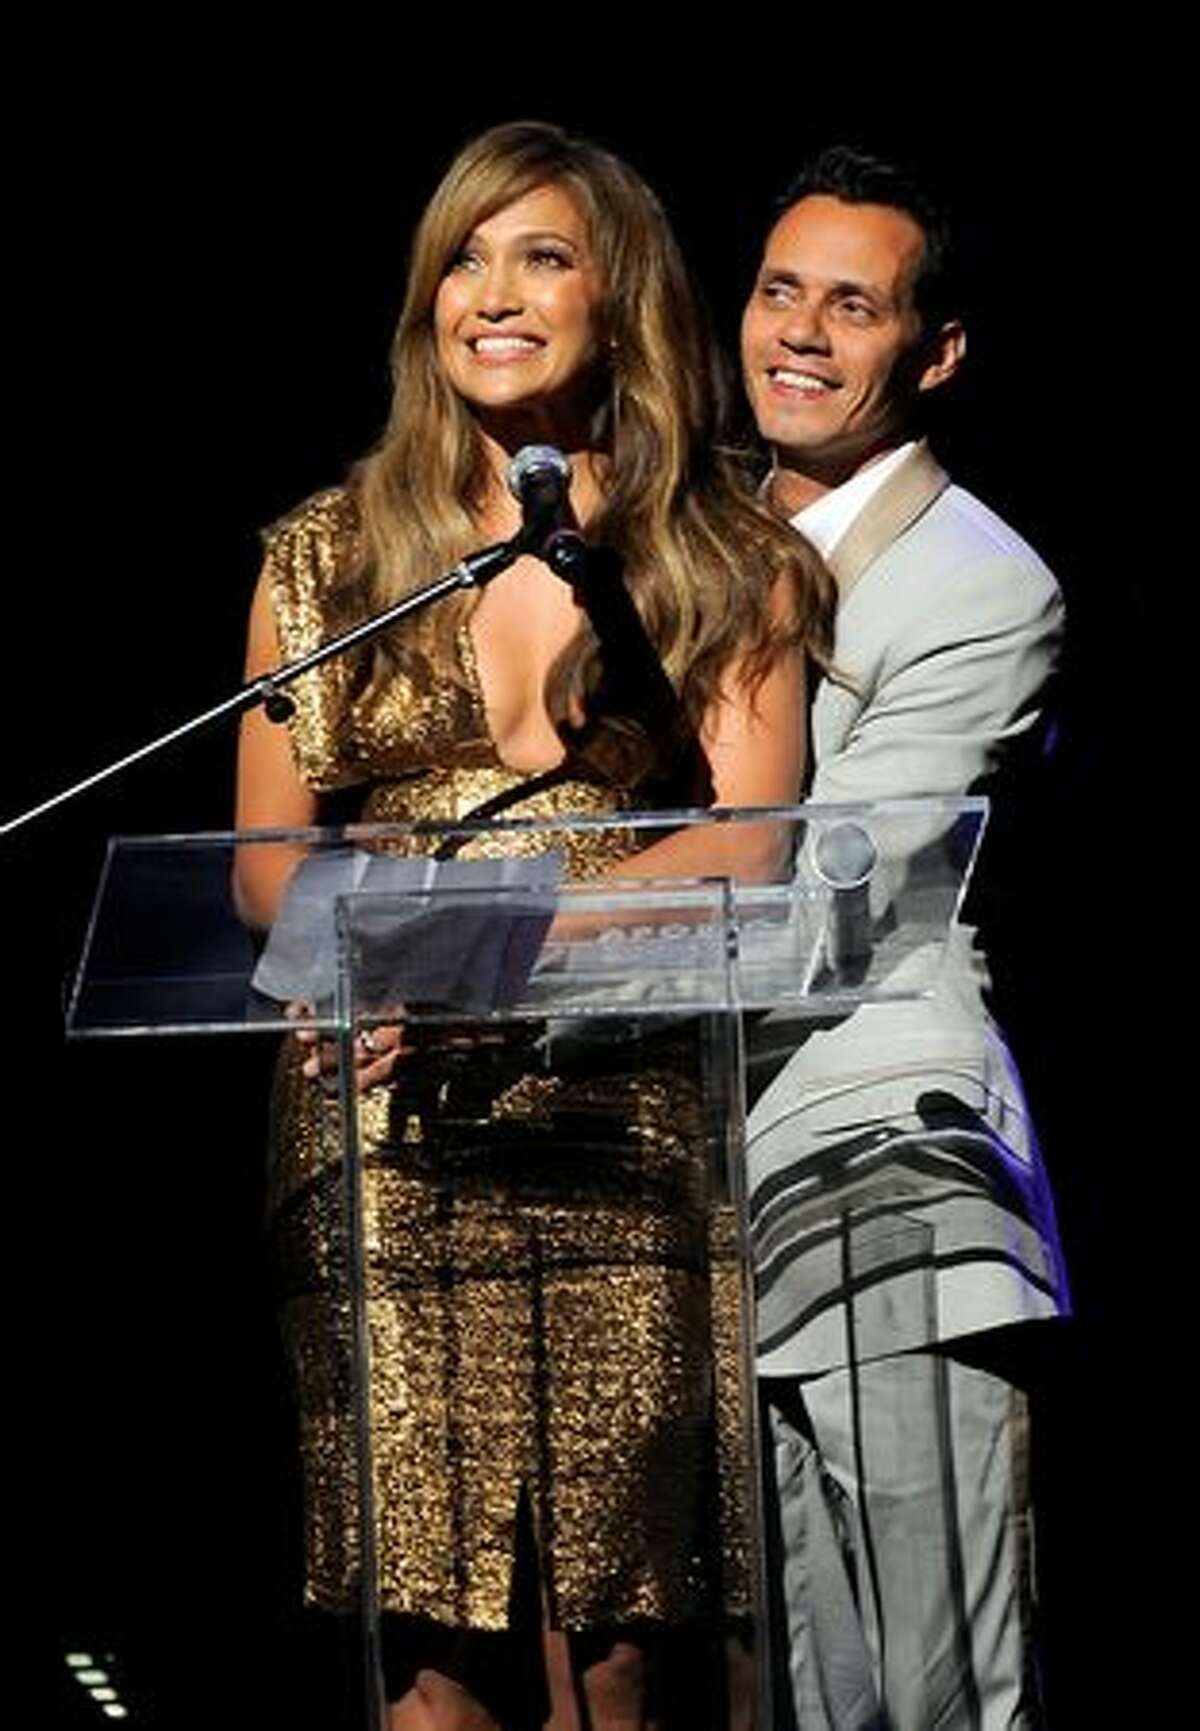 Singer\actress Jennifer Lopez and singer Marc Anthony accept the Ruby Dee & Ossie Davis Arts and Humanitarian Award during the 2010 Apollo Theater Spring Benefit Concert & Awards Ceremony at The Apollo Theater.